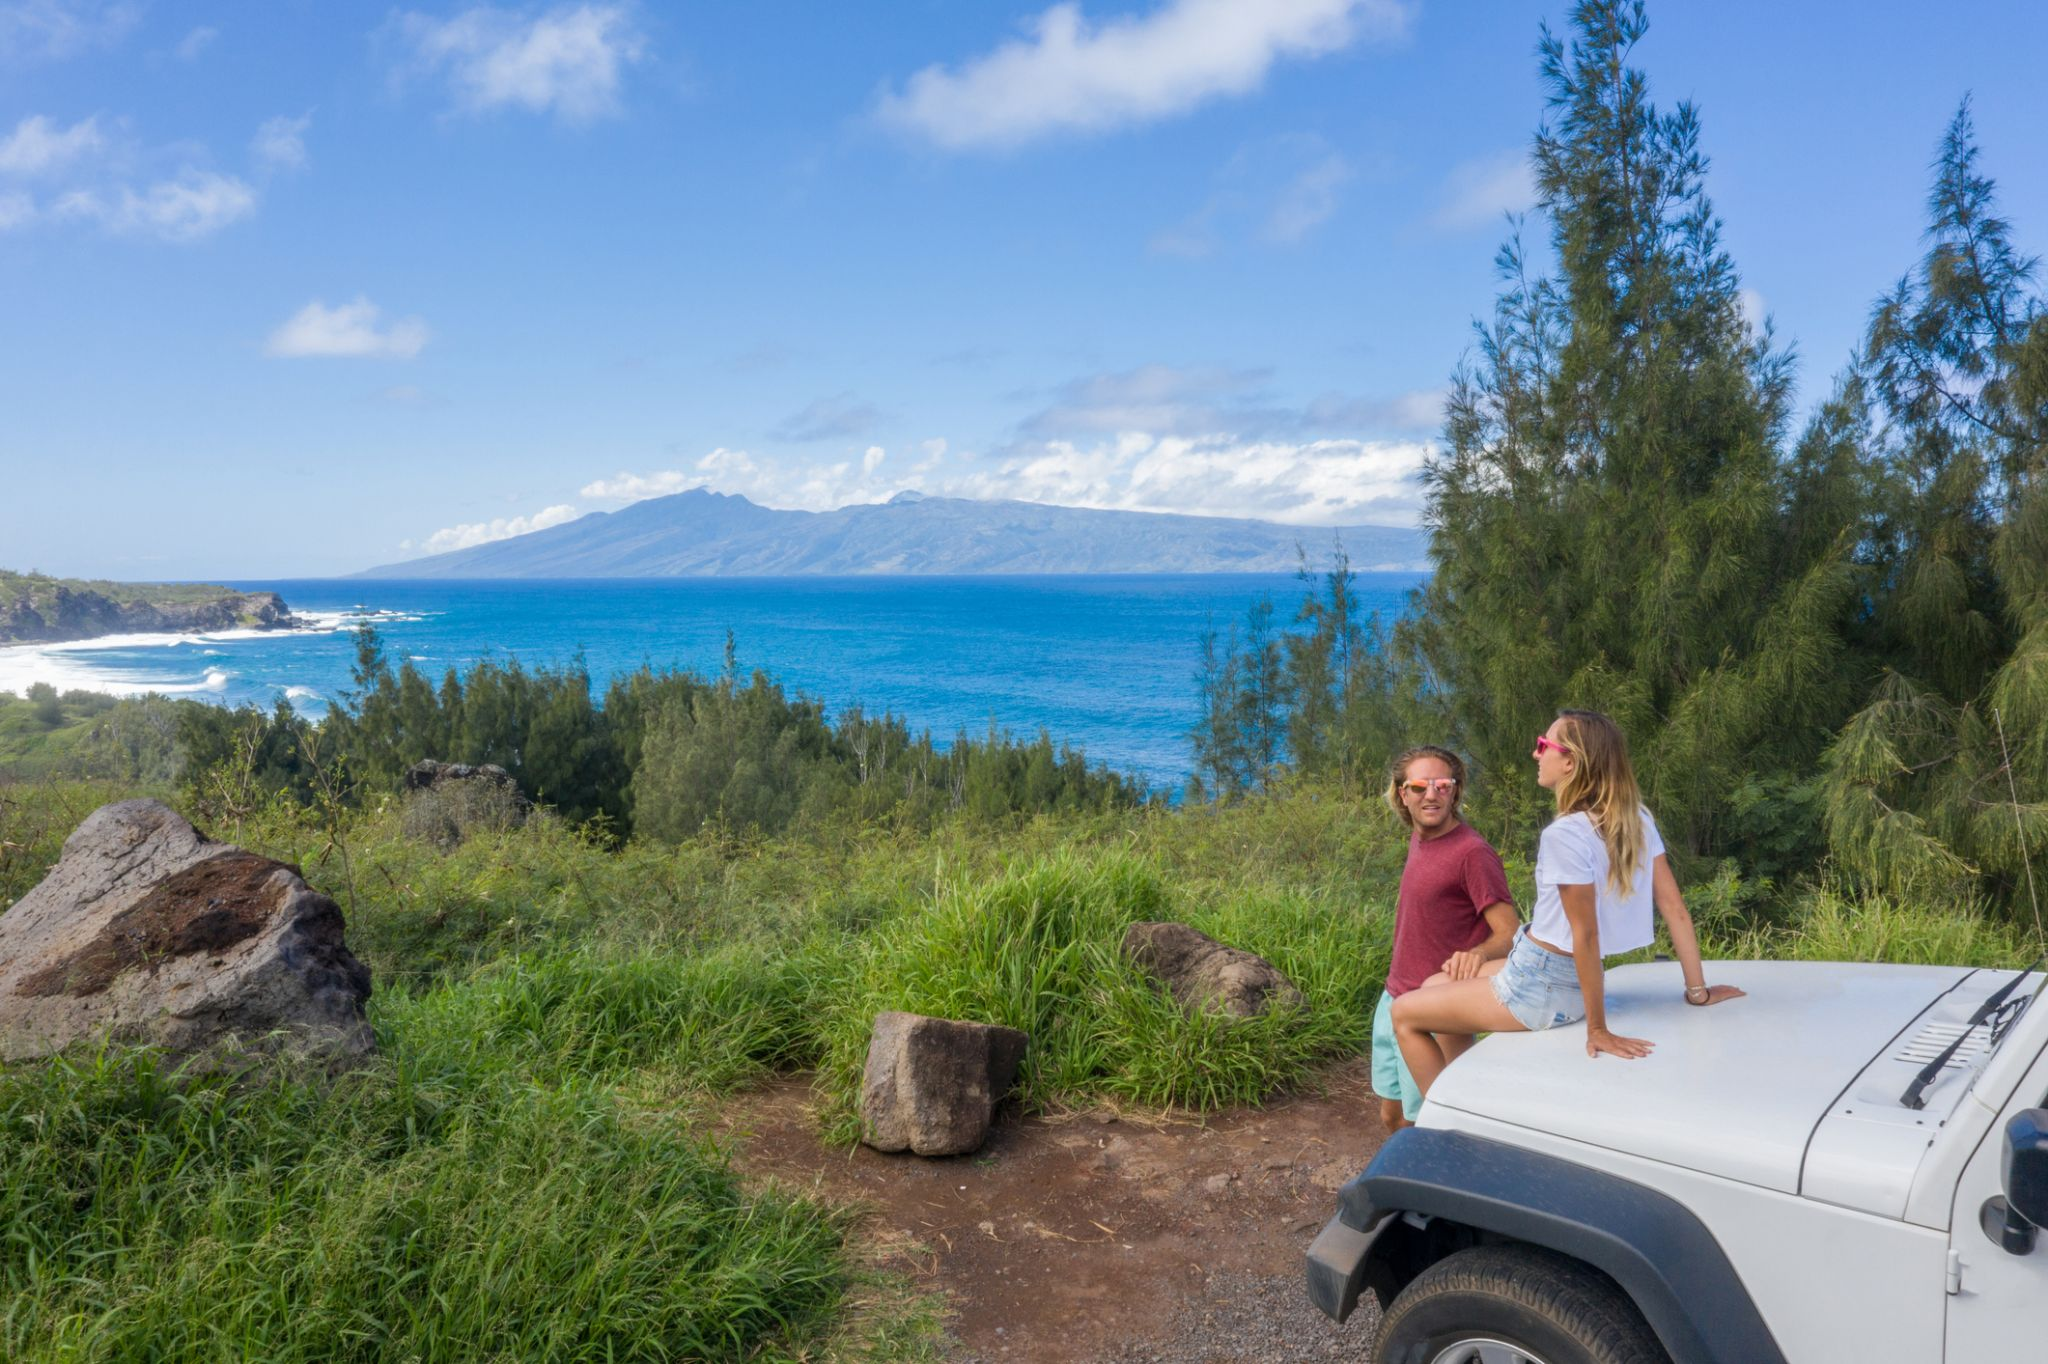 Hawaii rental car demand is up 1,287% - and prices are spiking